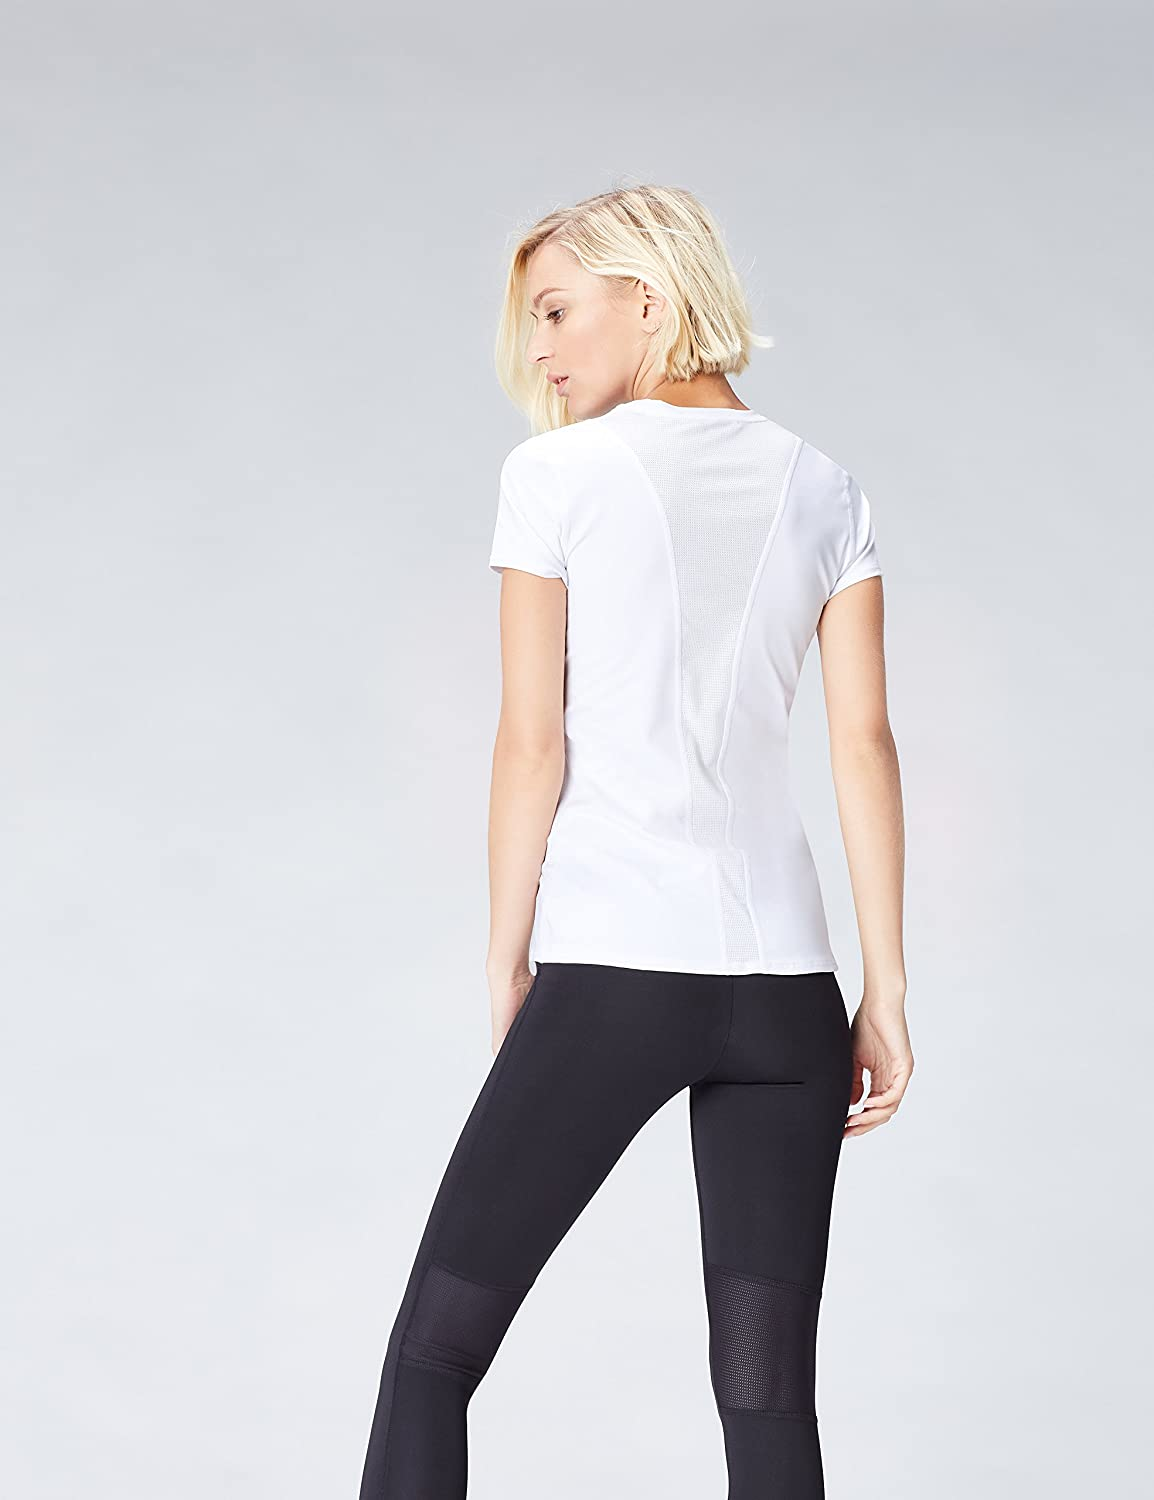 Mesh Panel Workout Activewear Maglia sportiva Donna